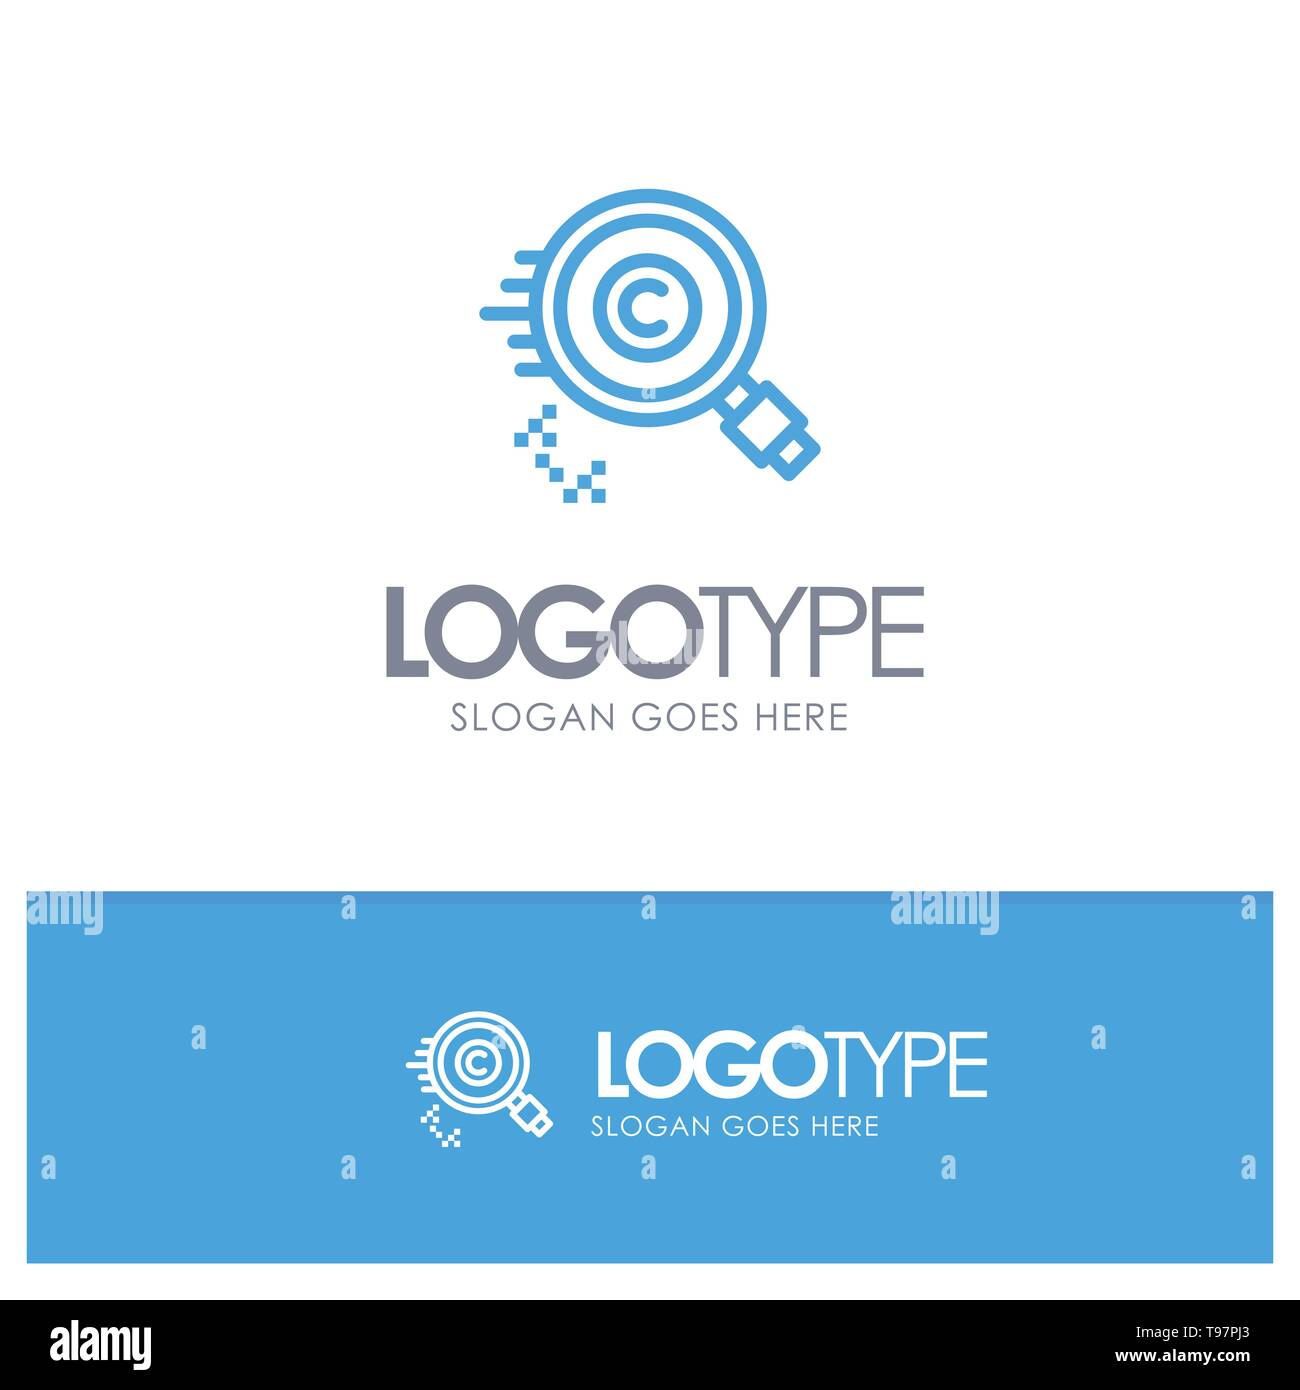 Content, Copyright, Find, Owner, Property Blue outLine Logo with place for tagline - Stock Image